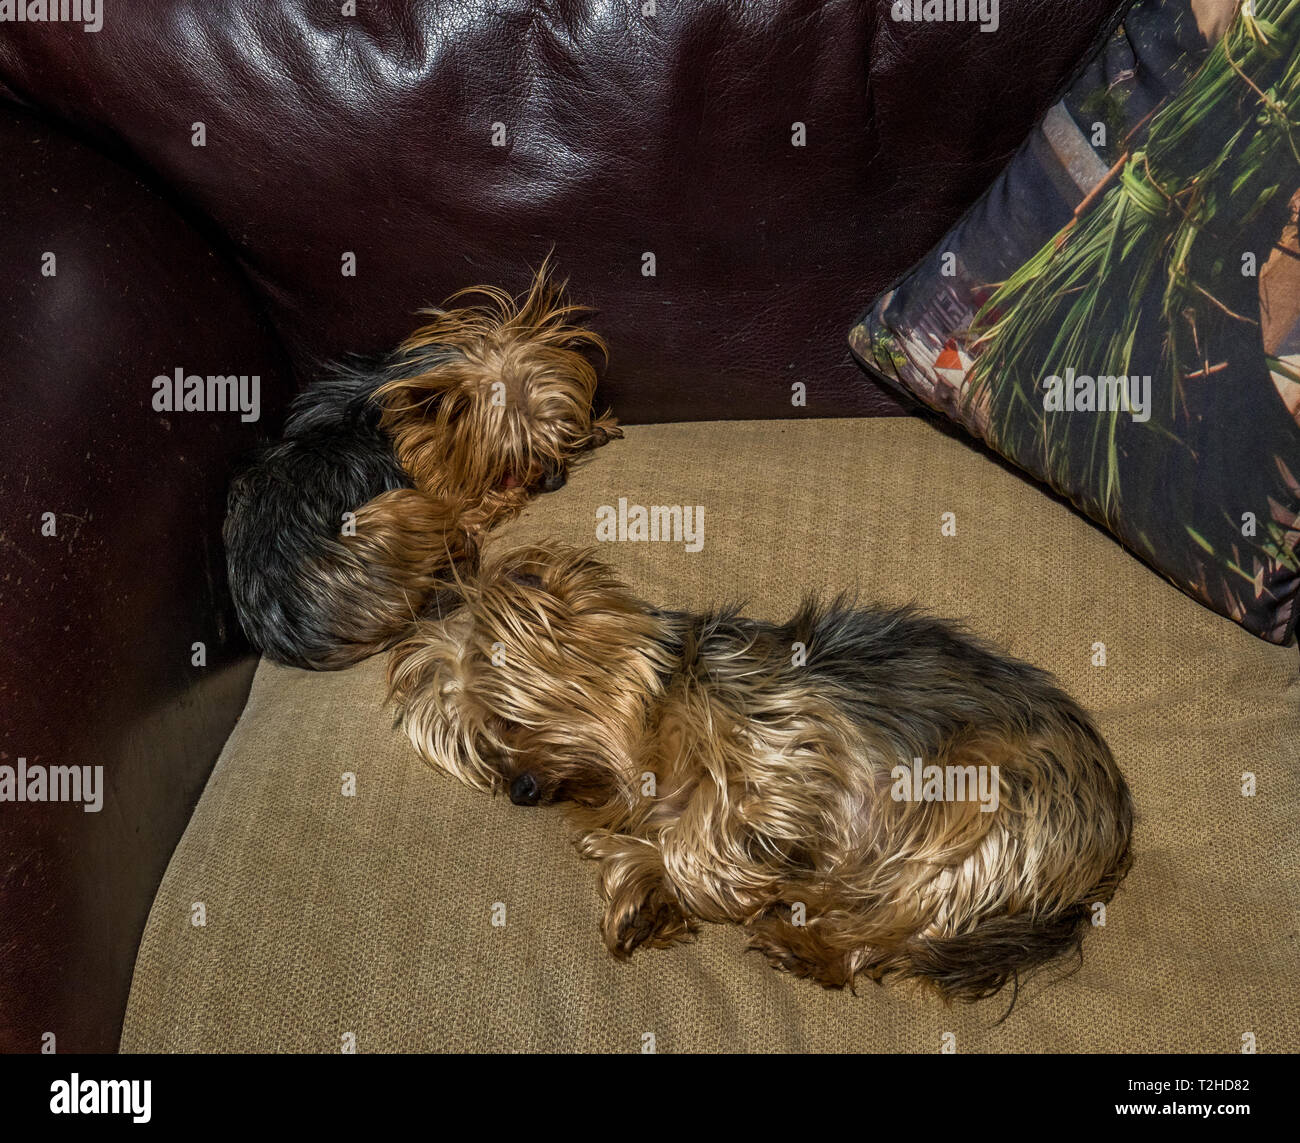 Two small pet dogs sleeping on a couch indoors image with copy space in landscape format - Stock Image